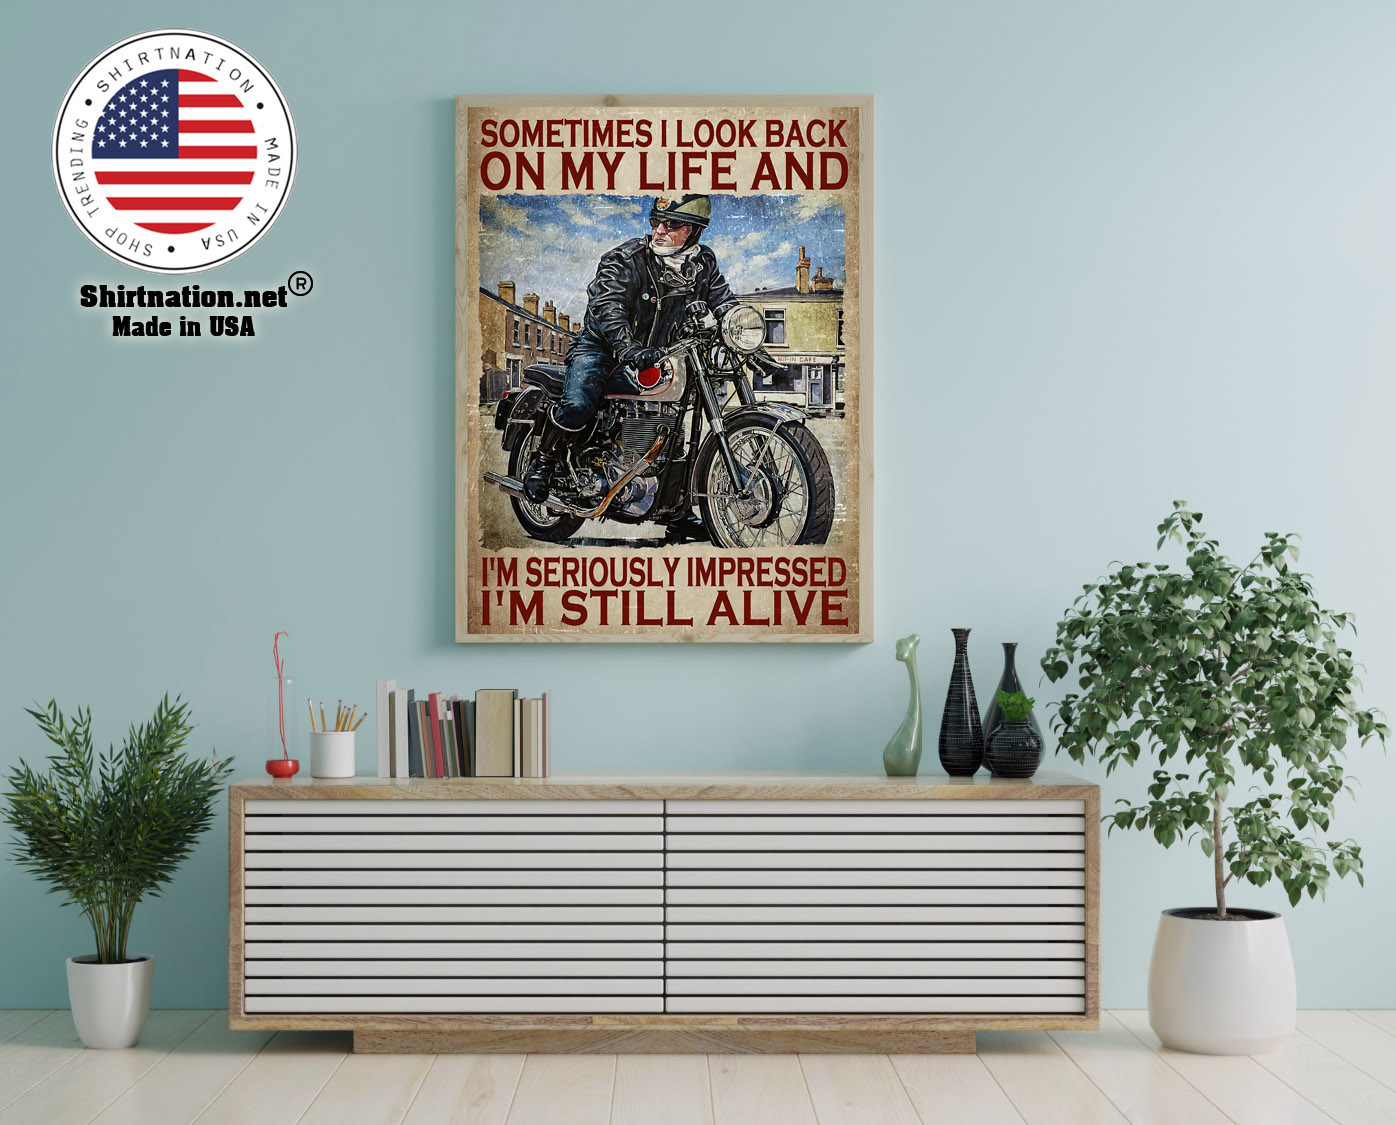 Motorcycles man Sometimes I look back on my life and Im seriously impressed Im still alive poster 12 1